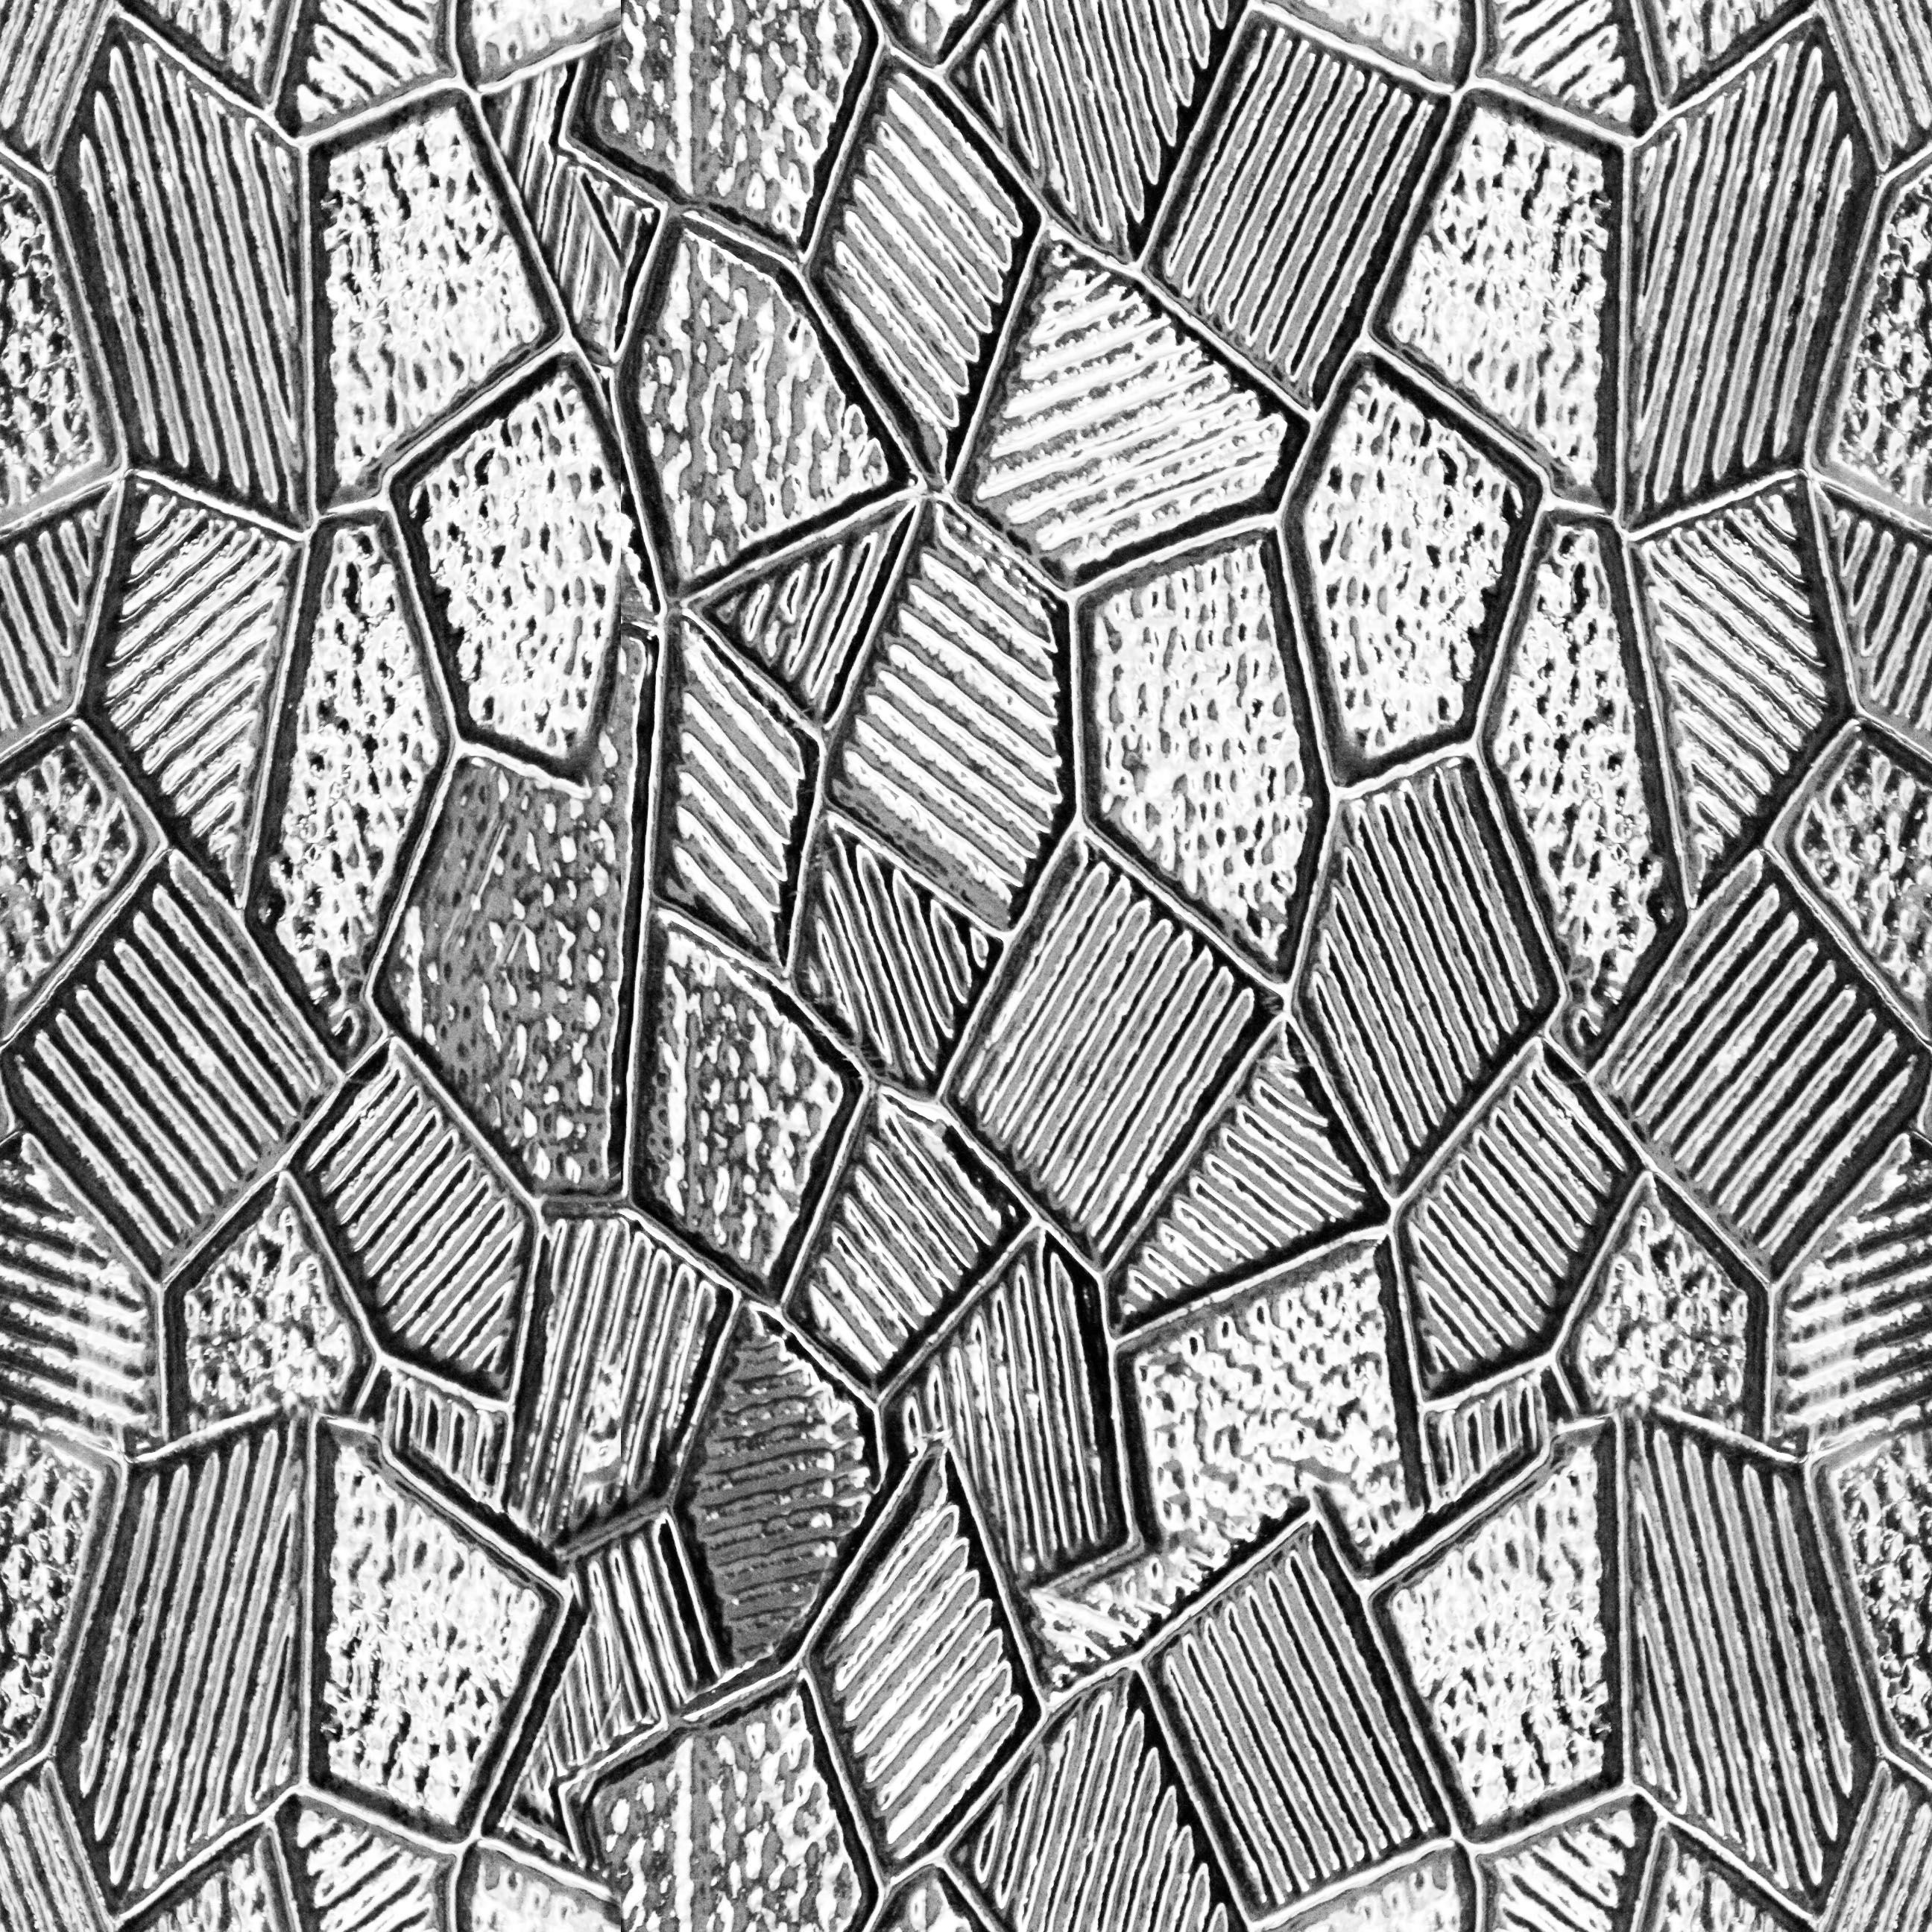 Frosted Glass Architecture Drawing